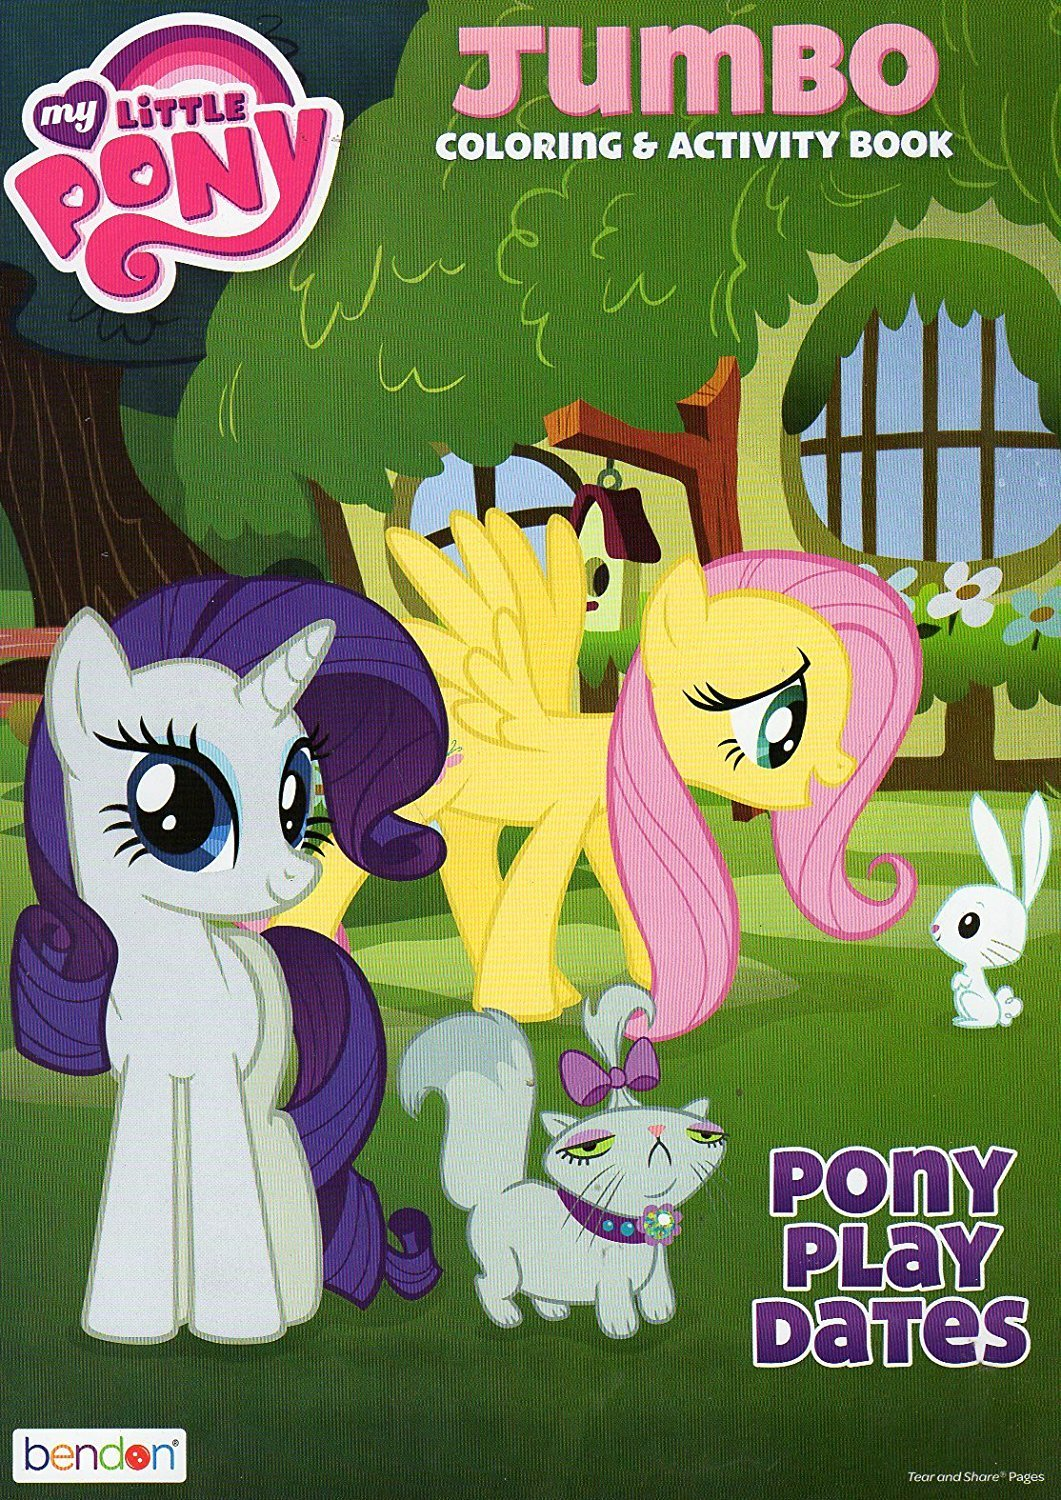 My Little Pony Coloring and Activity Book - Pony Play Dates - 96 Pages